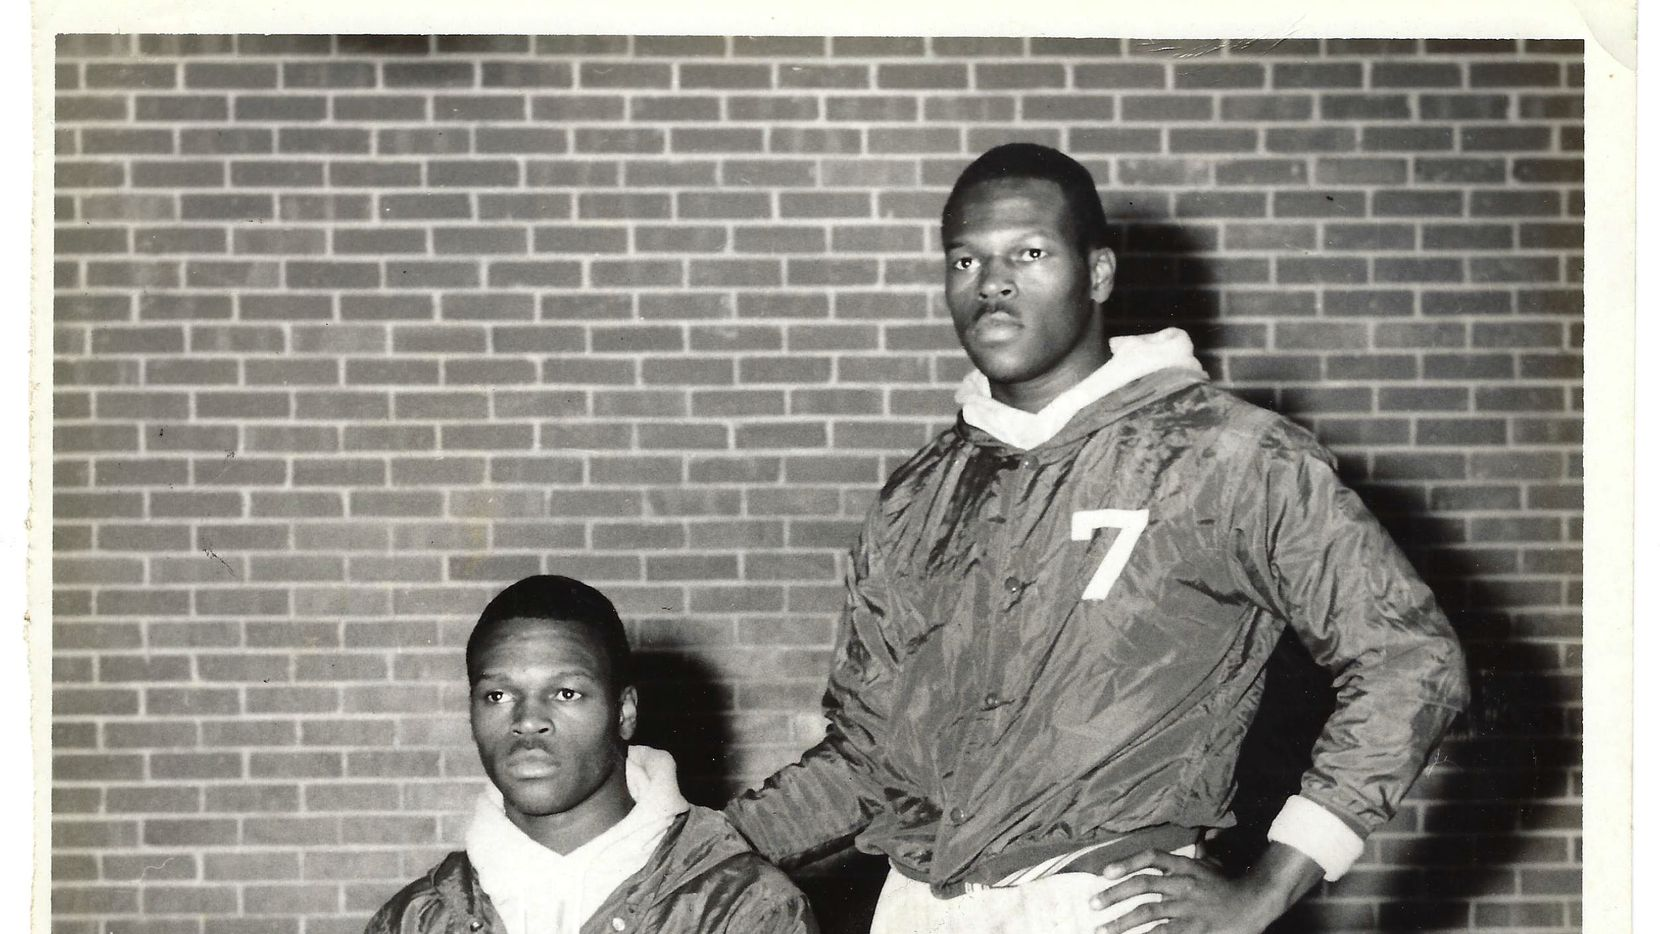 Gene Pouncy (left) and his twin brother Joe in the Lincoln HS gym in 1970.